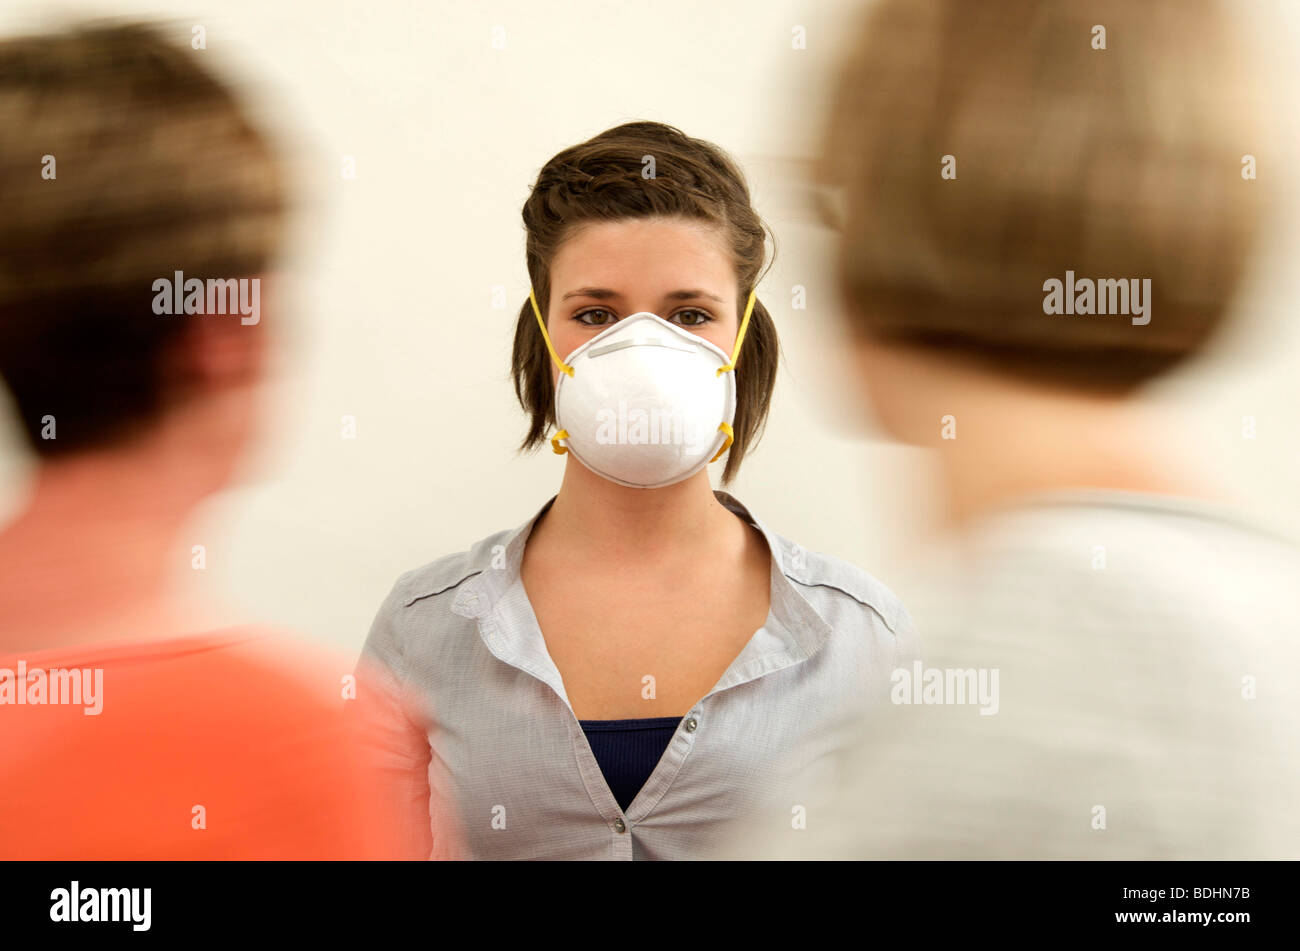 Women with surgical mask protecting against flu / virus transmission - Stock Image